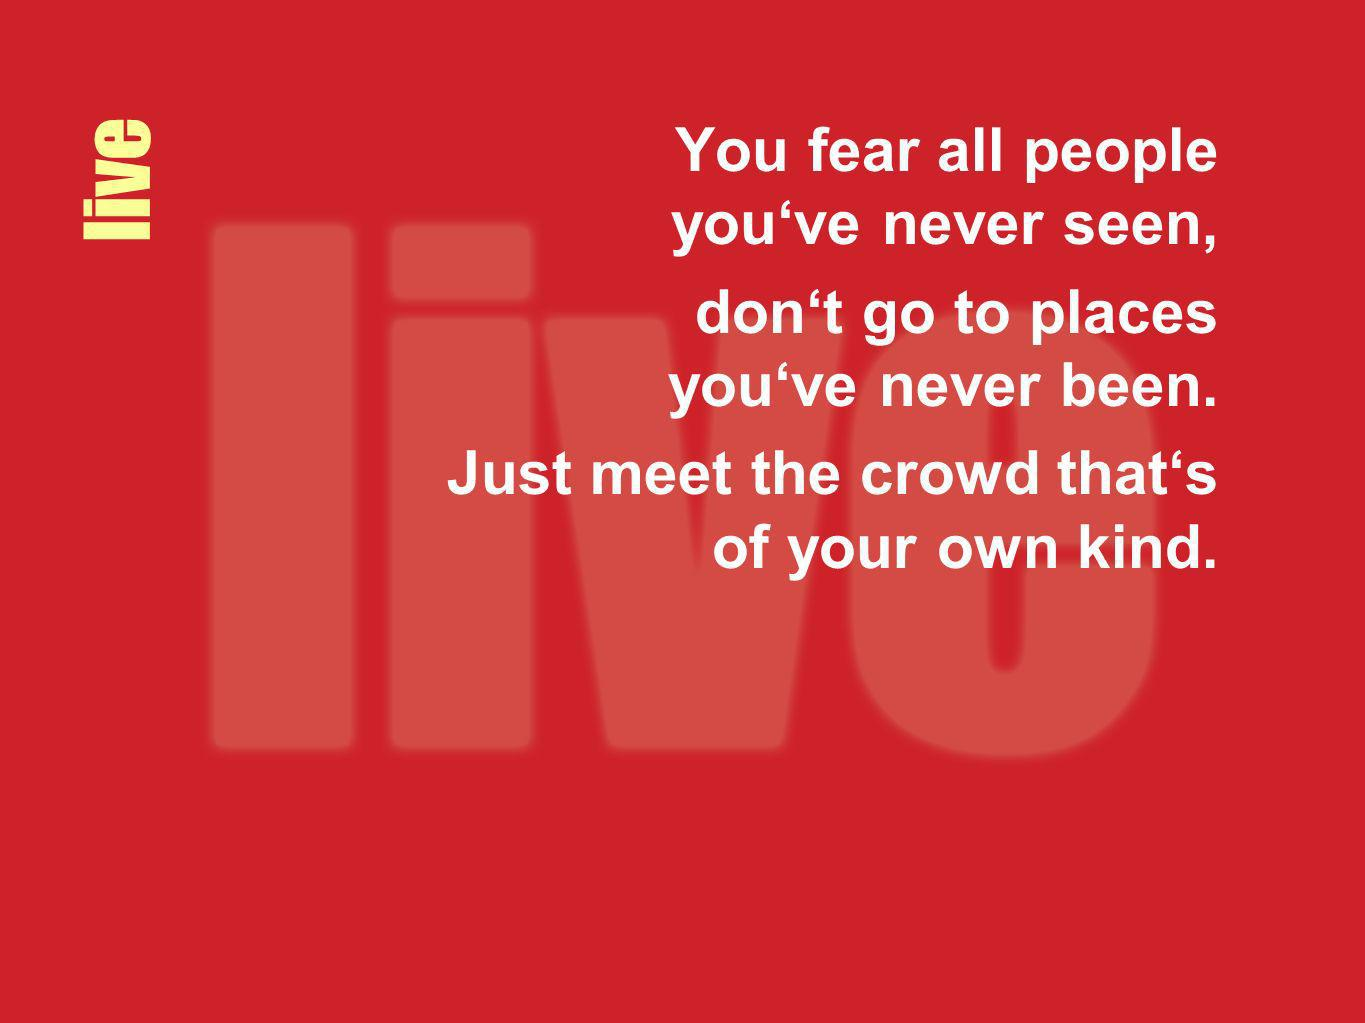 live You fear all people youve never seen, dont go to places youve never been. Just meet the crowd thats of your own kind.